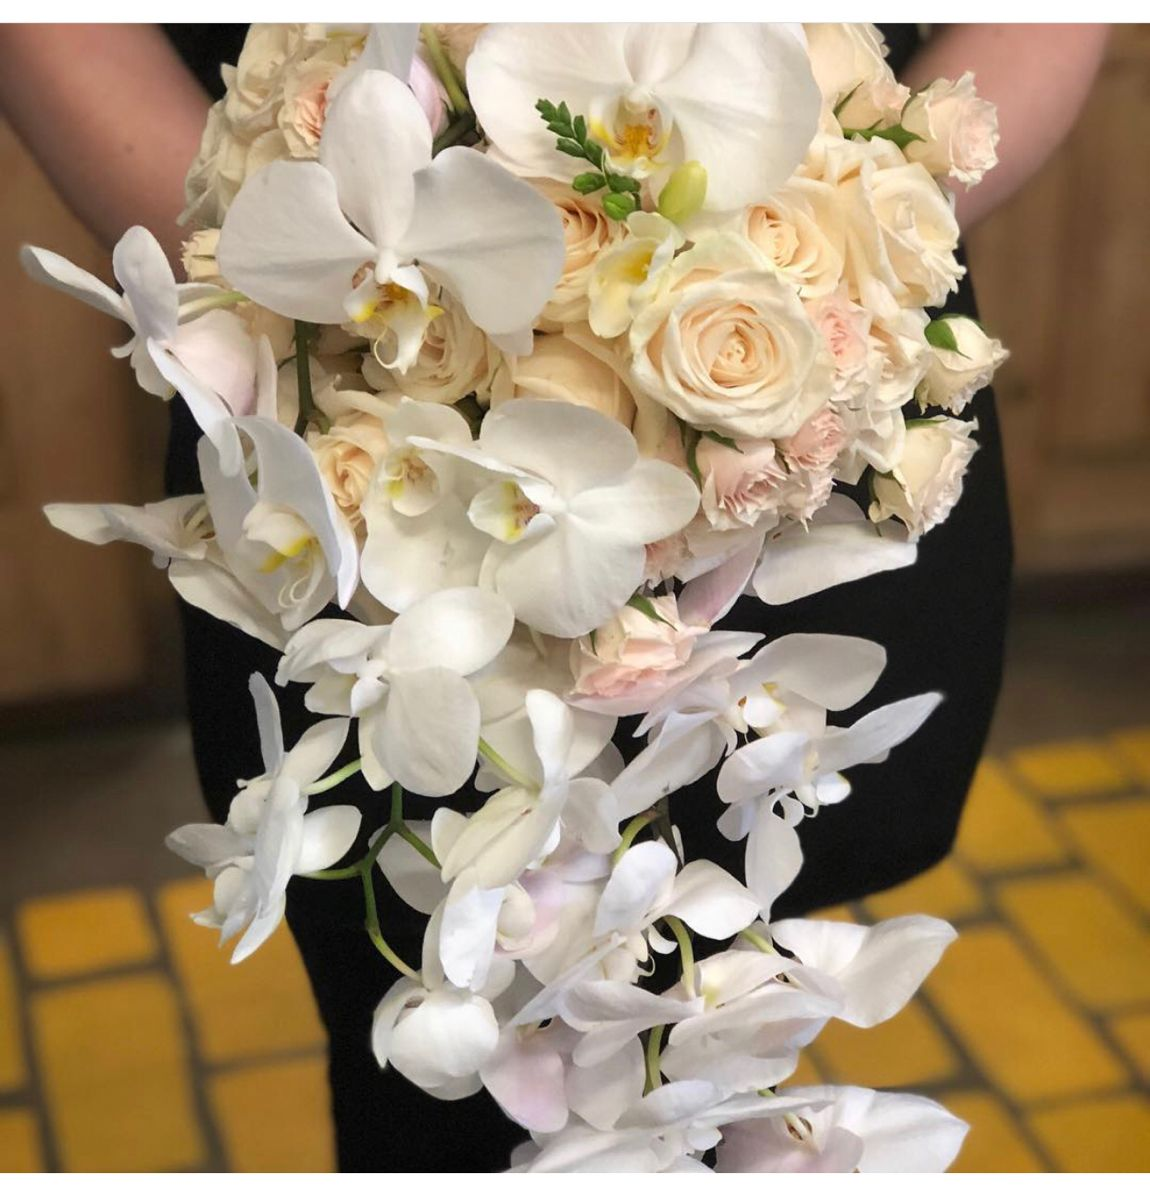 Wedding Bouquets In 2020 Wedding Bouquets Bridal Bouquet Wholesale Flowers